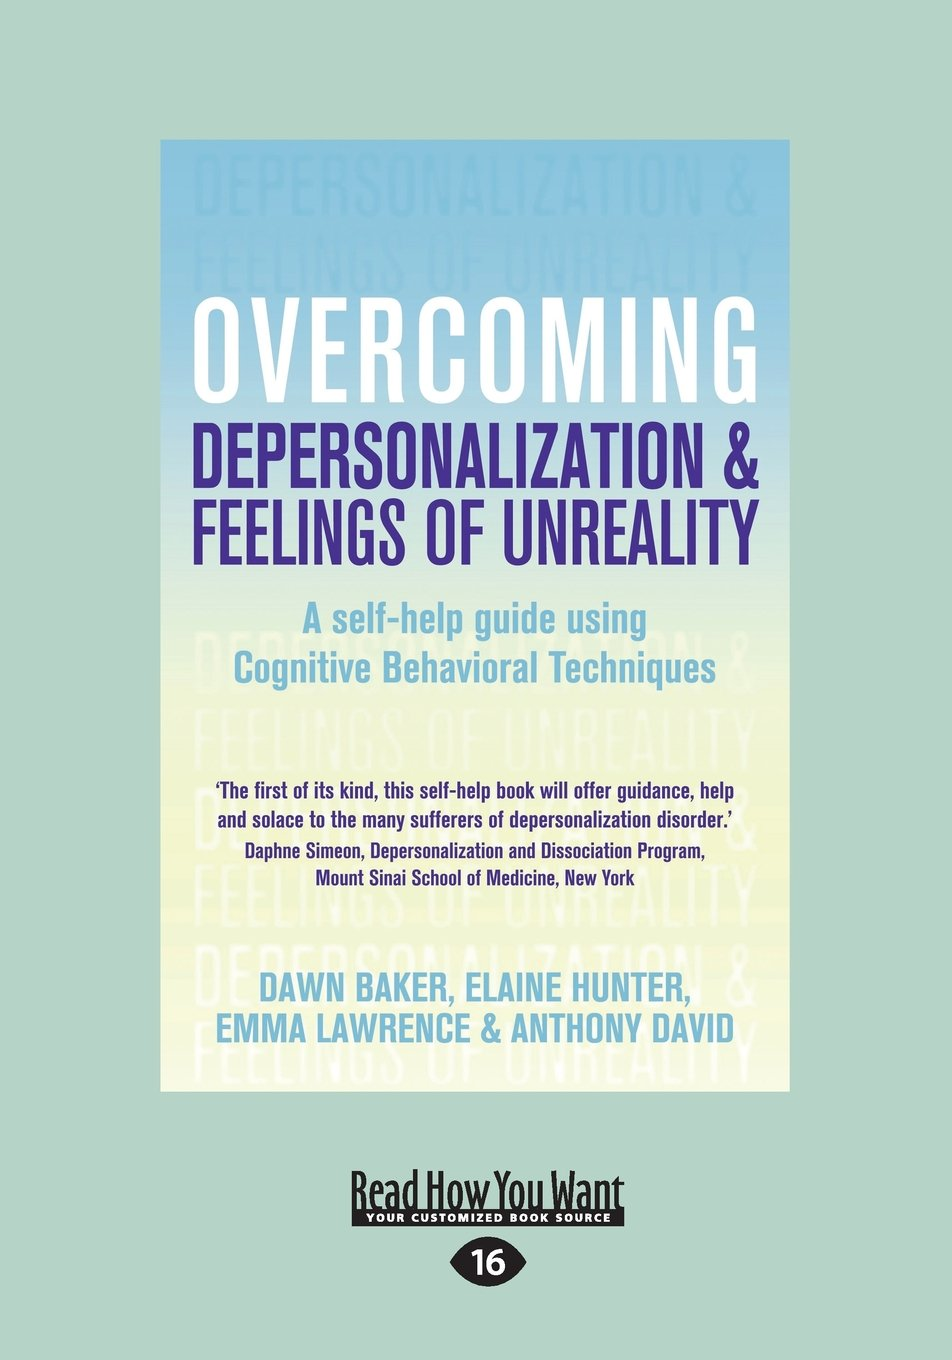 Overcoming Depersonalization and Feelings of Unreality: A Self-Help Guide Using Cognitive Behavioral Techniques ebook